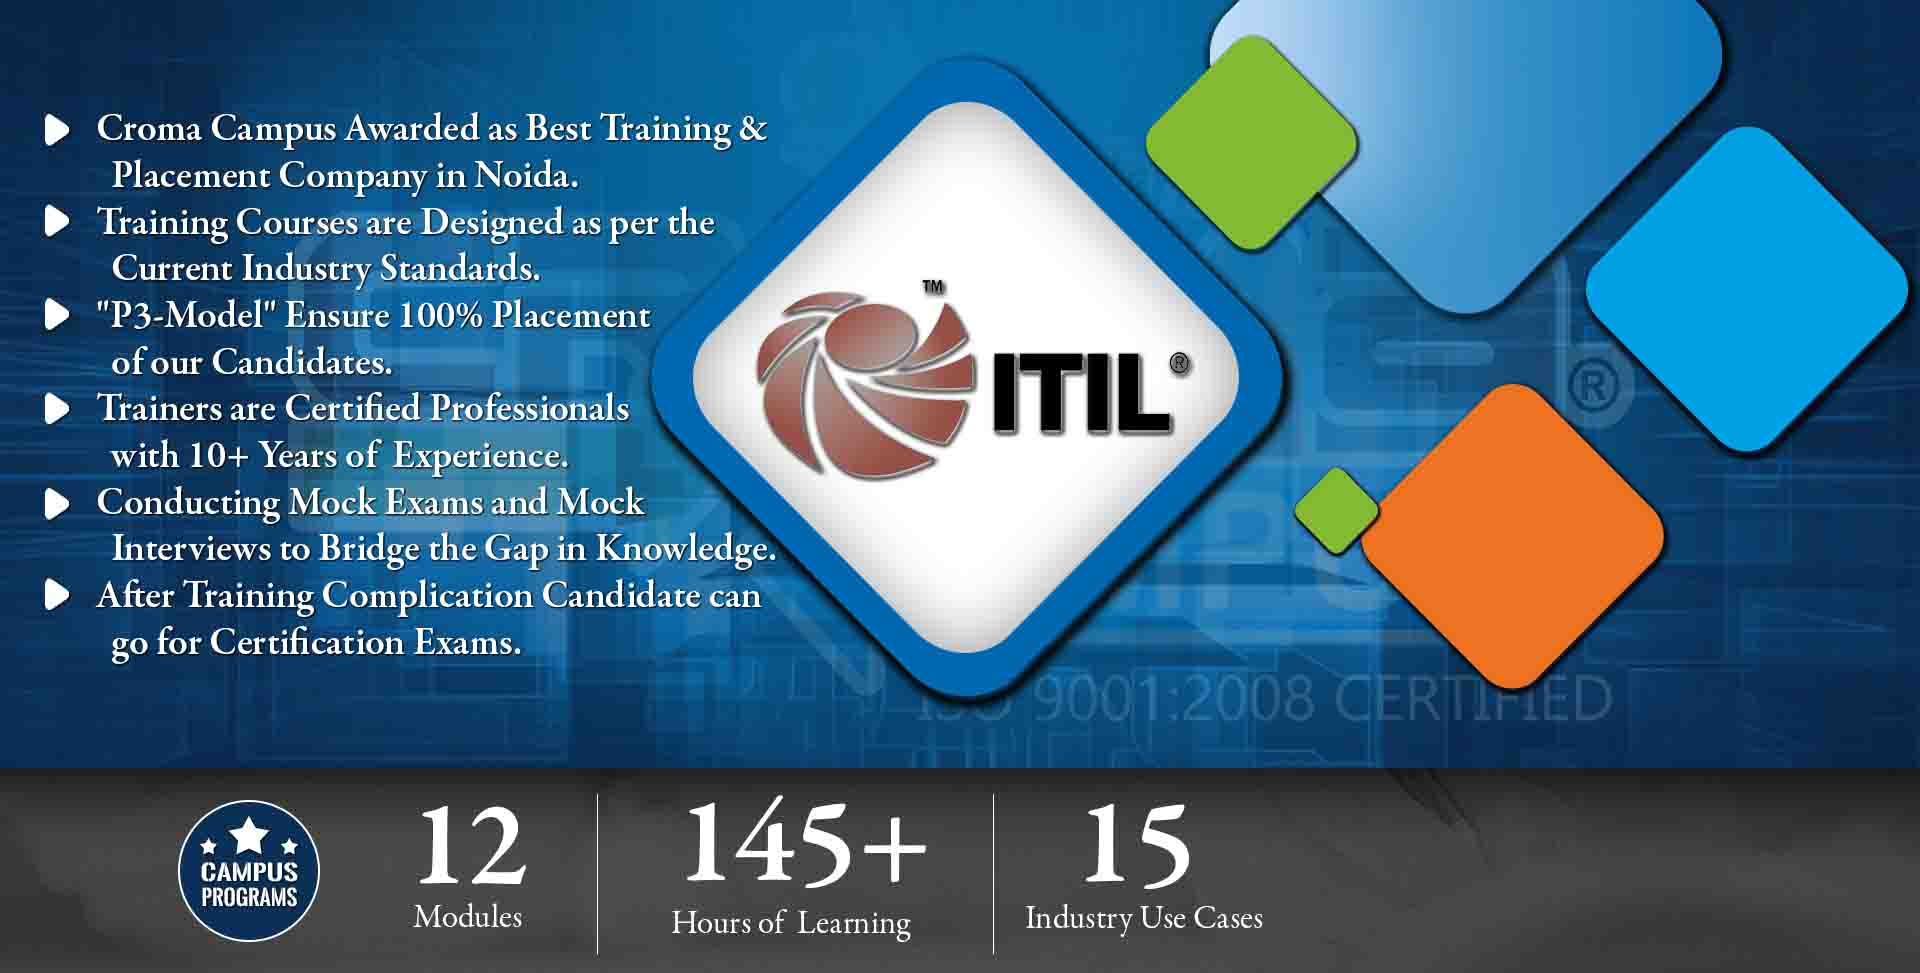 ITIL Training in Gurgaon- Croma Campus